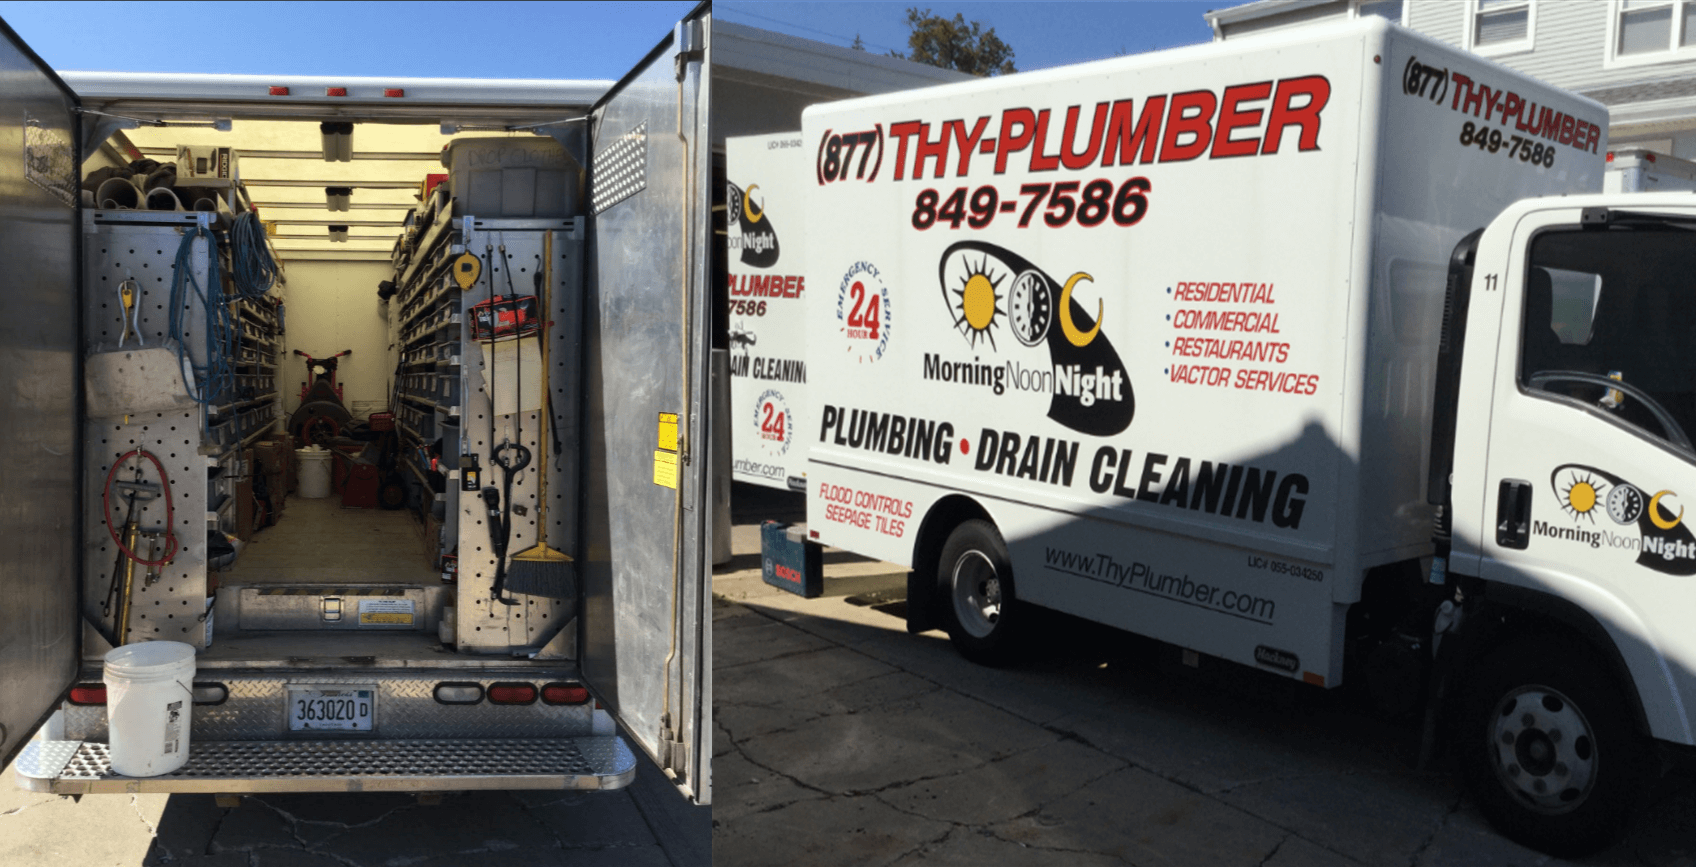 North Riverside, IL Plumber